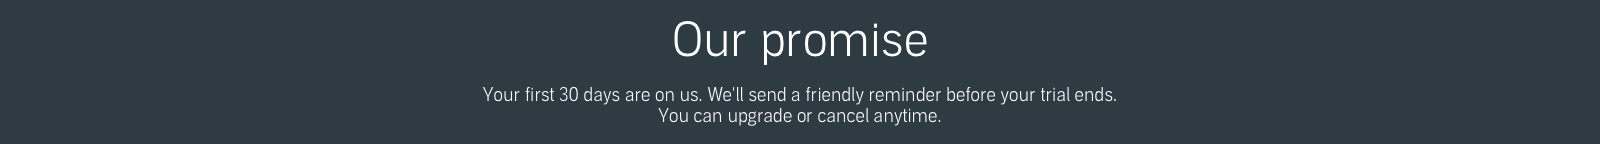 Our promise: Cancel online anytime- we'll even send an email reminder before your trial ends. And, anything you download is yours to keep forever.